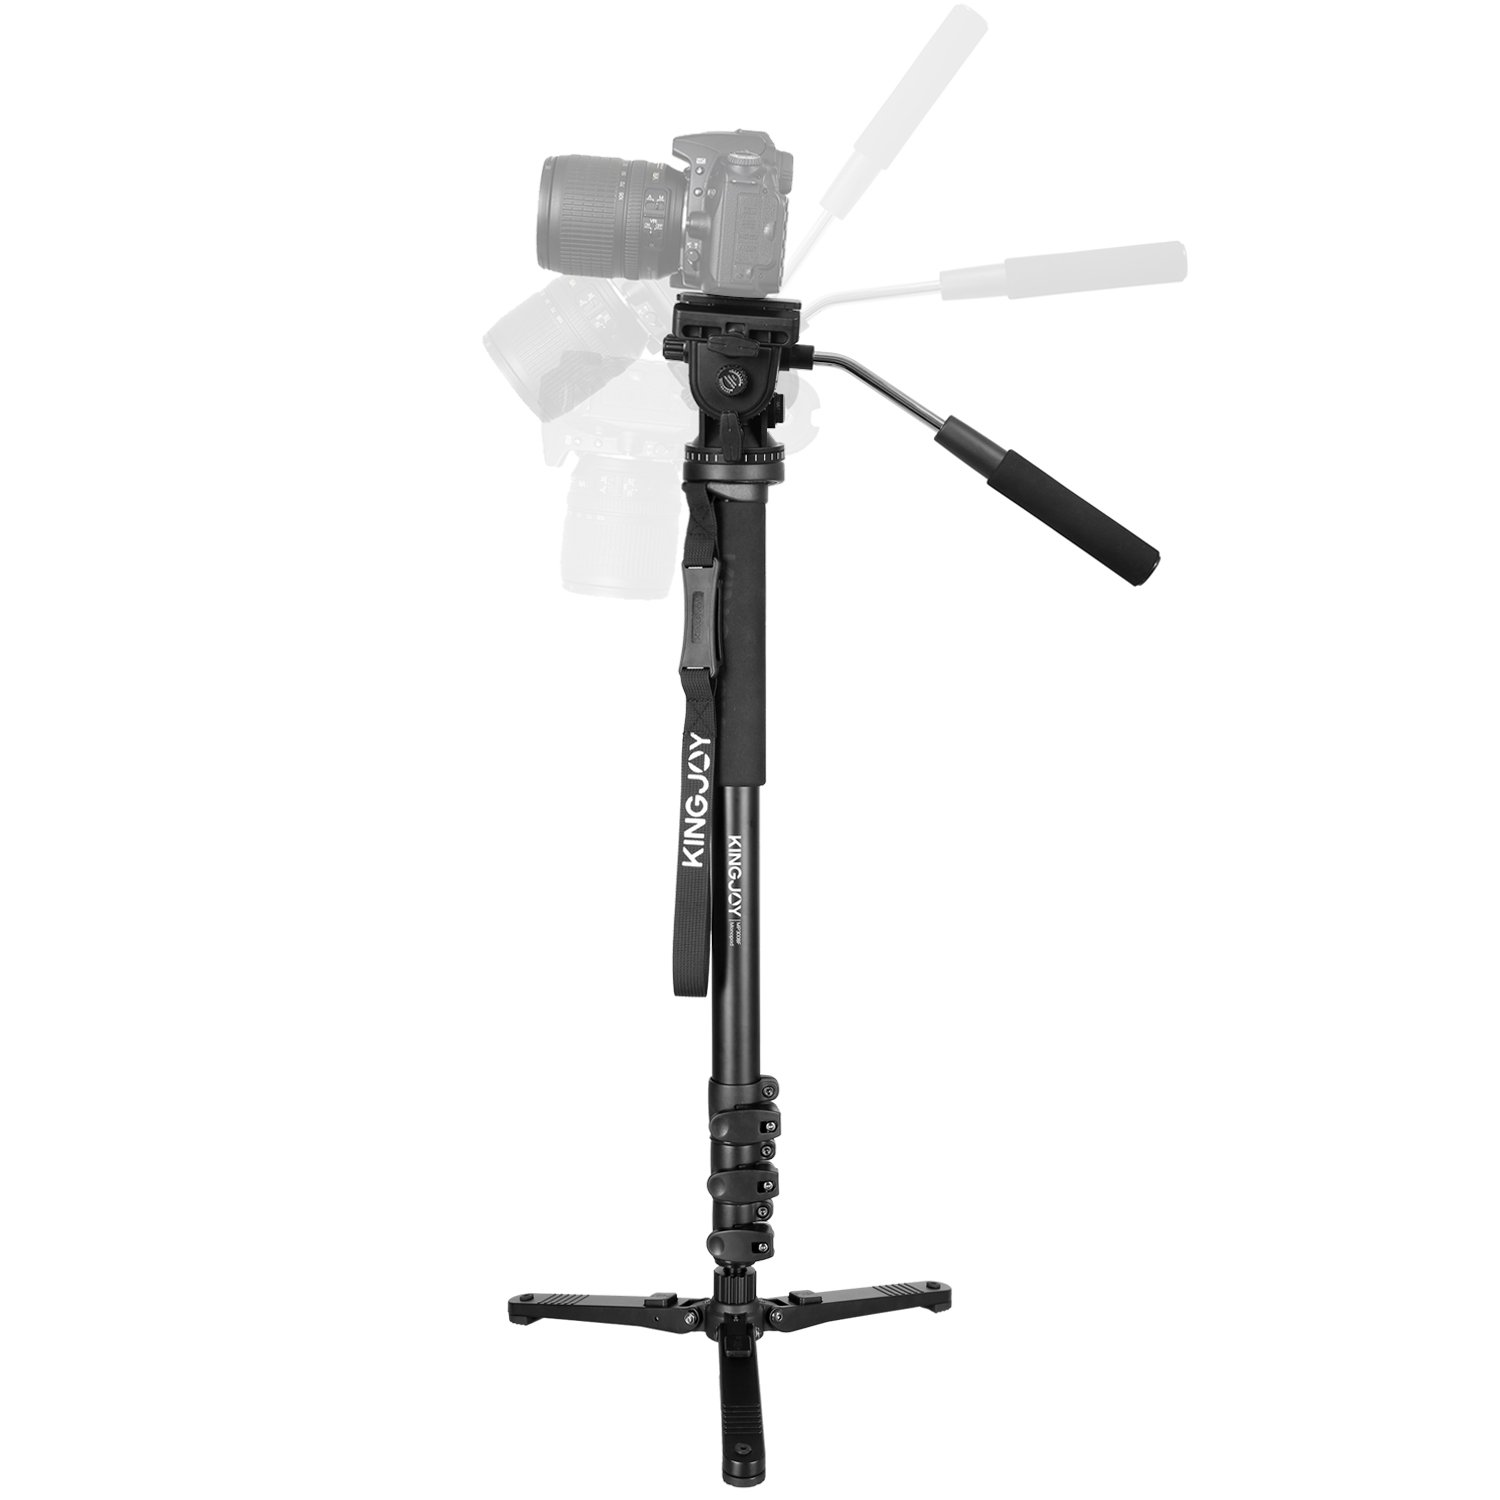 Papaler Professional Camera Monopod Kit, 69'' Aluminum Video Tripod Monopod with Removable Fluid Drag Pan Head and Folding Three Feet Support Stand Base for Canon Nikon Sony DSLR panorama shooting by Papaler